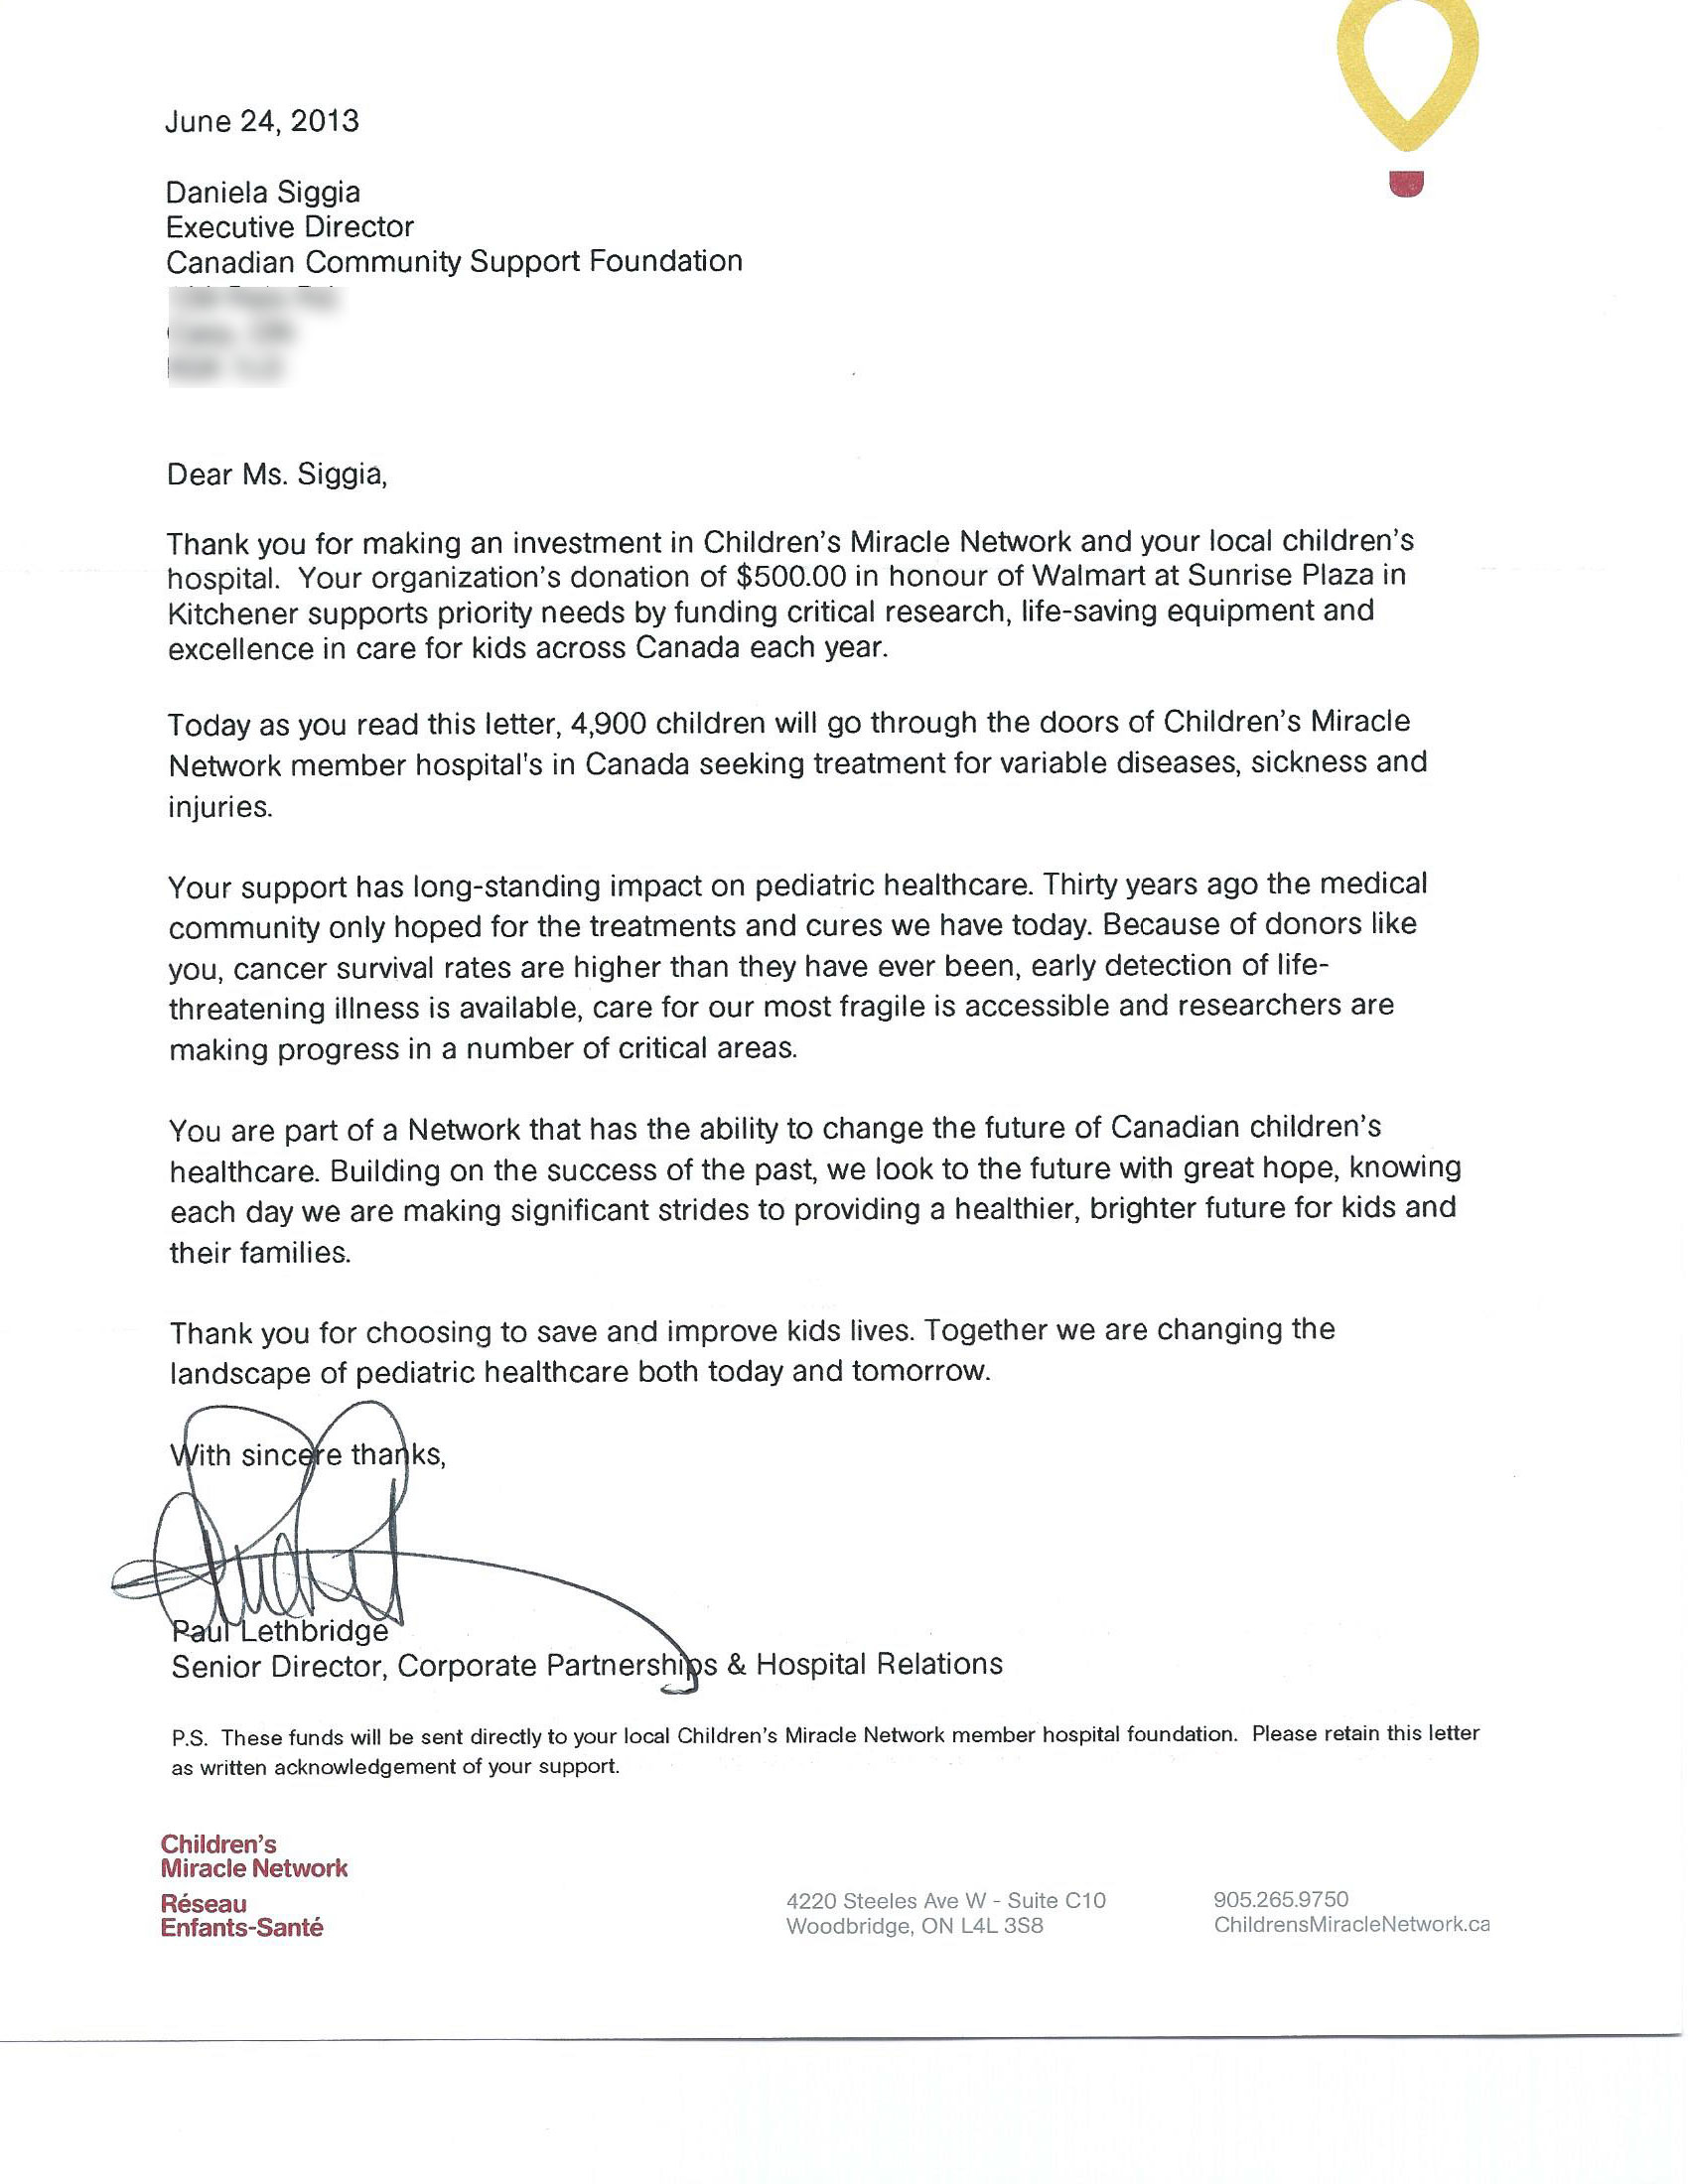 Thank You For Your Support Letter from secureservercdn.net